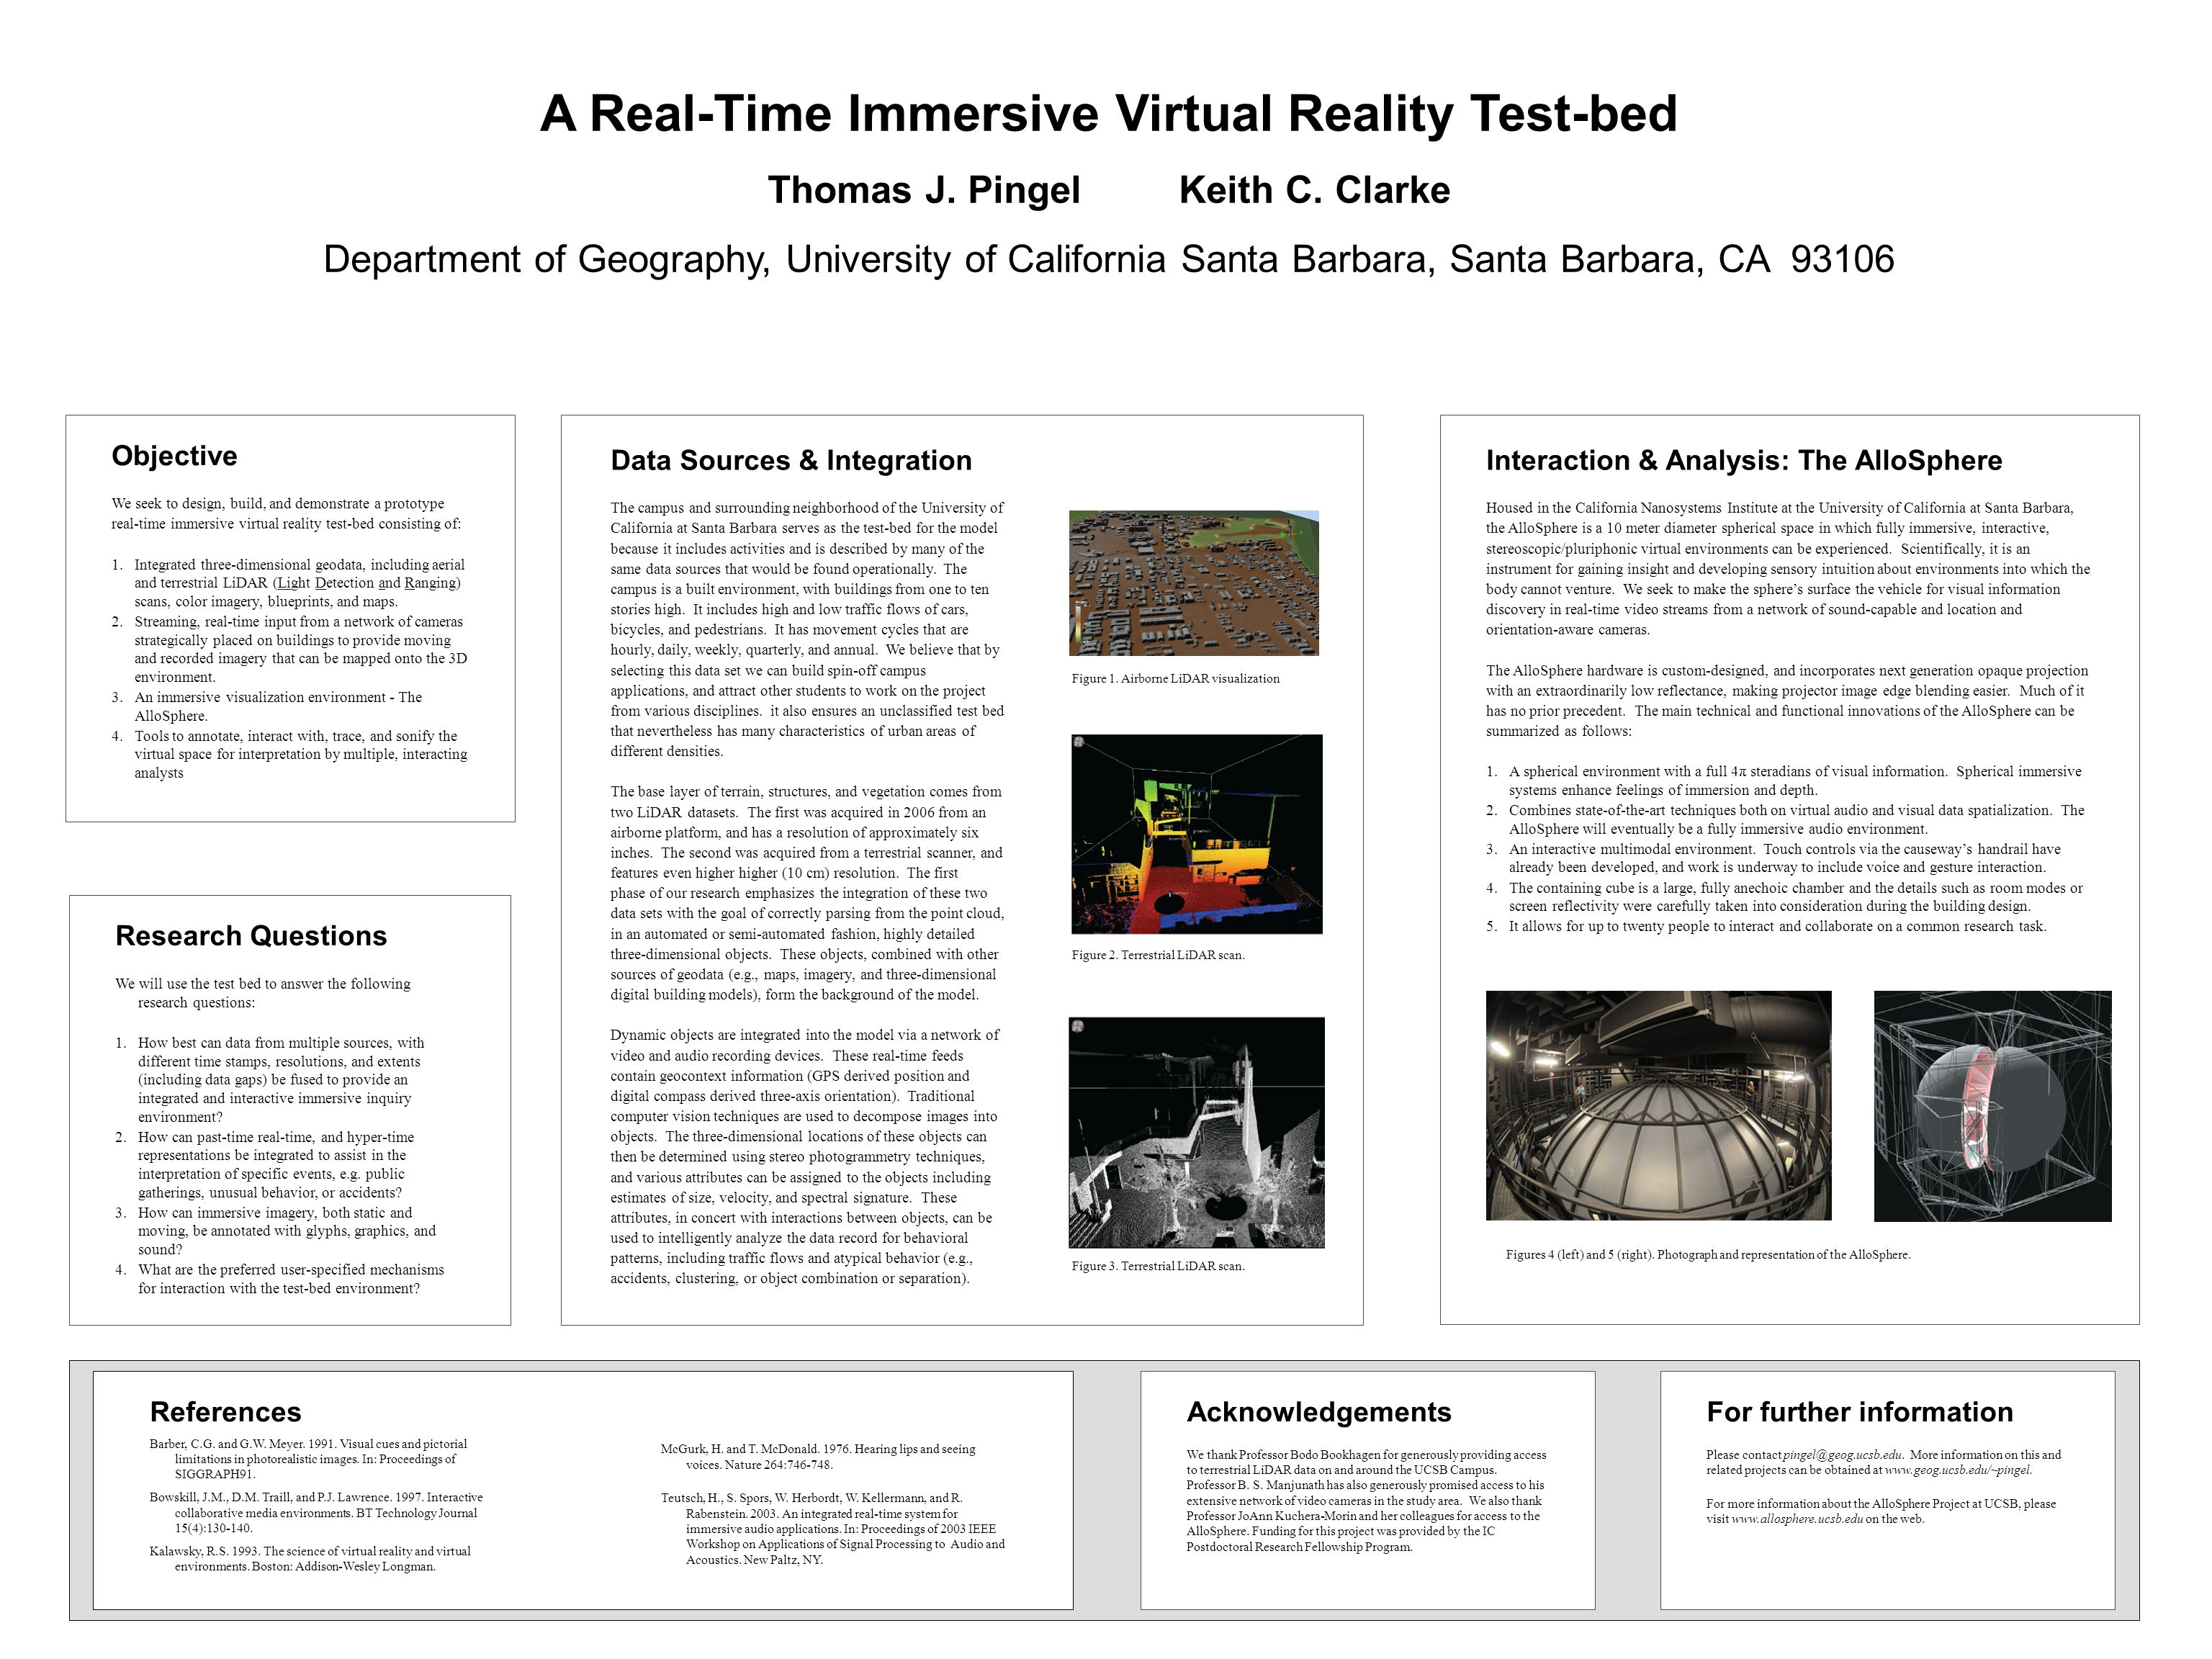 Objective We seek to design, build, and demonstrate a prototype real-time immersive virtual reality test-bed consisting of: 1.Integrated three-dimensional geodata, including aerial and terrestrial LiDAR (Light Detection and Ranging) scans, color imagery, blueprints, and maps.